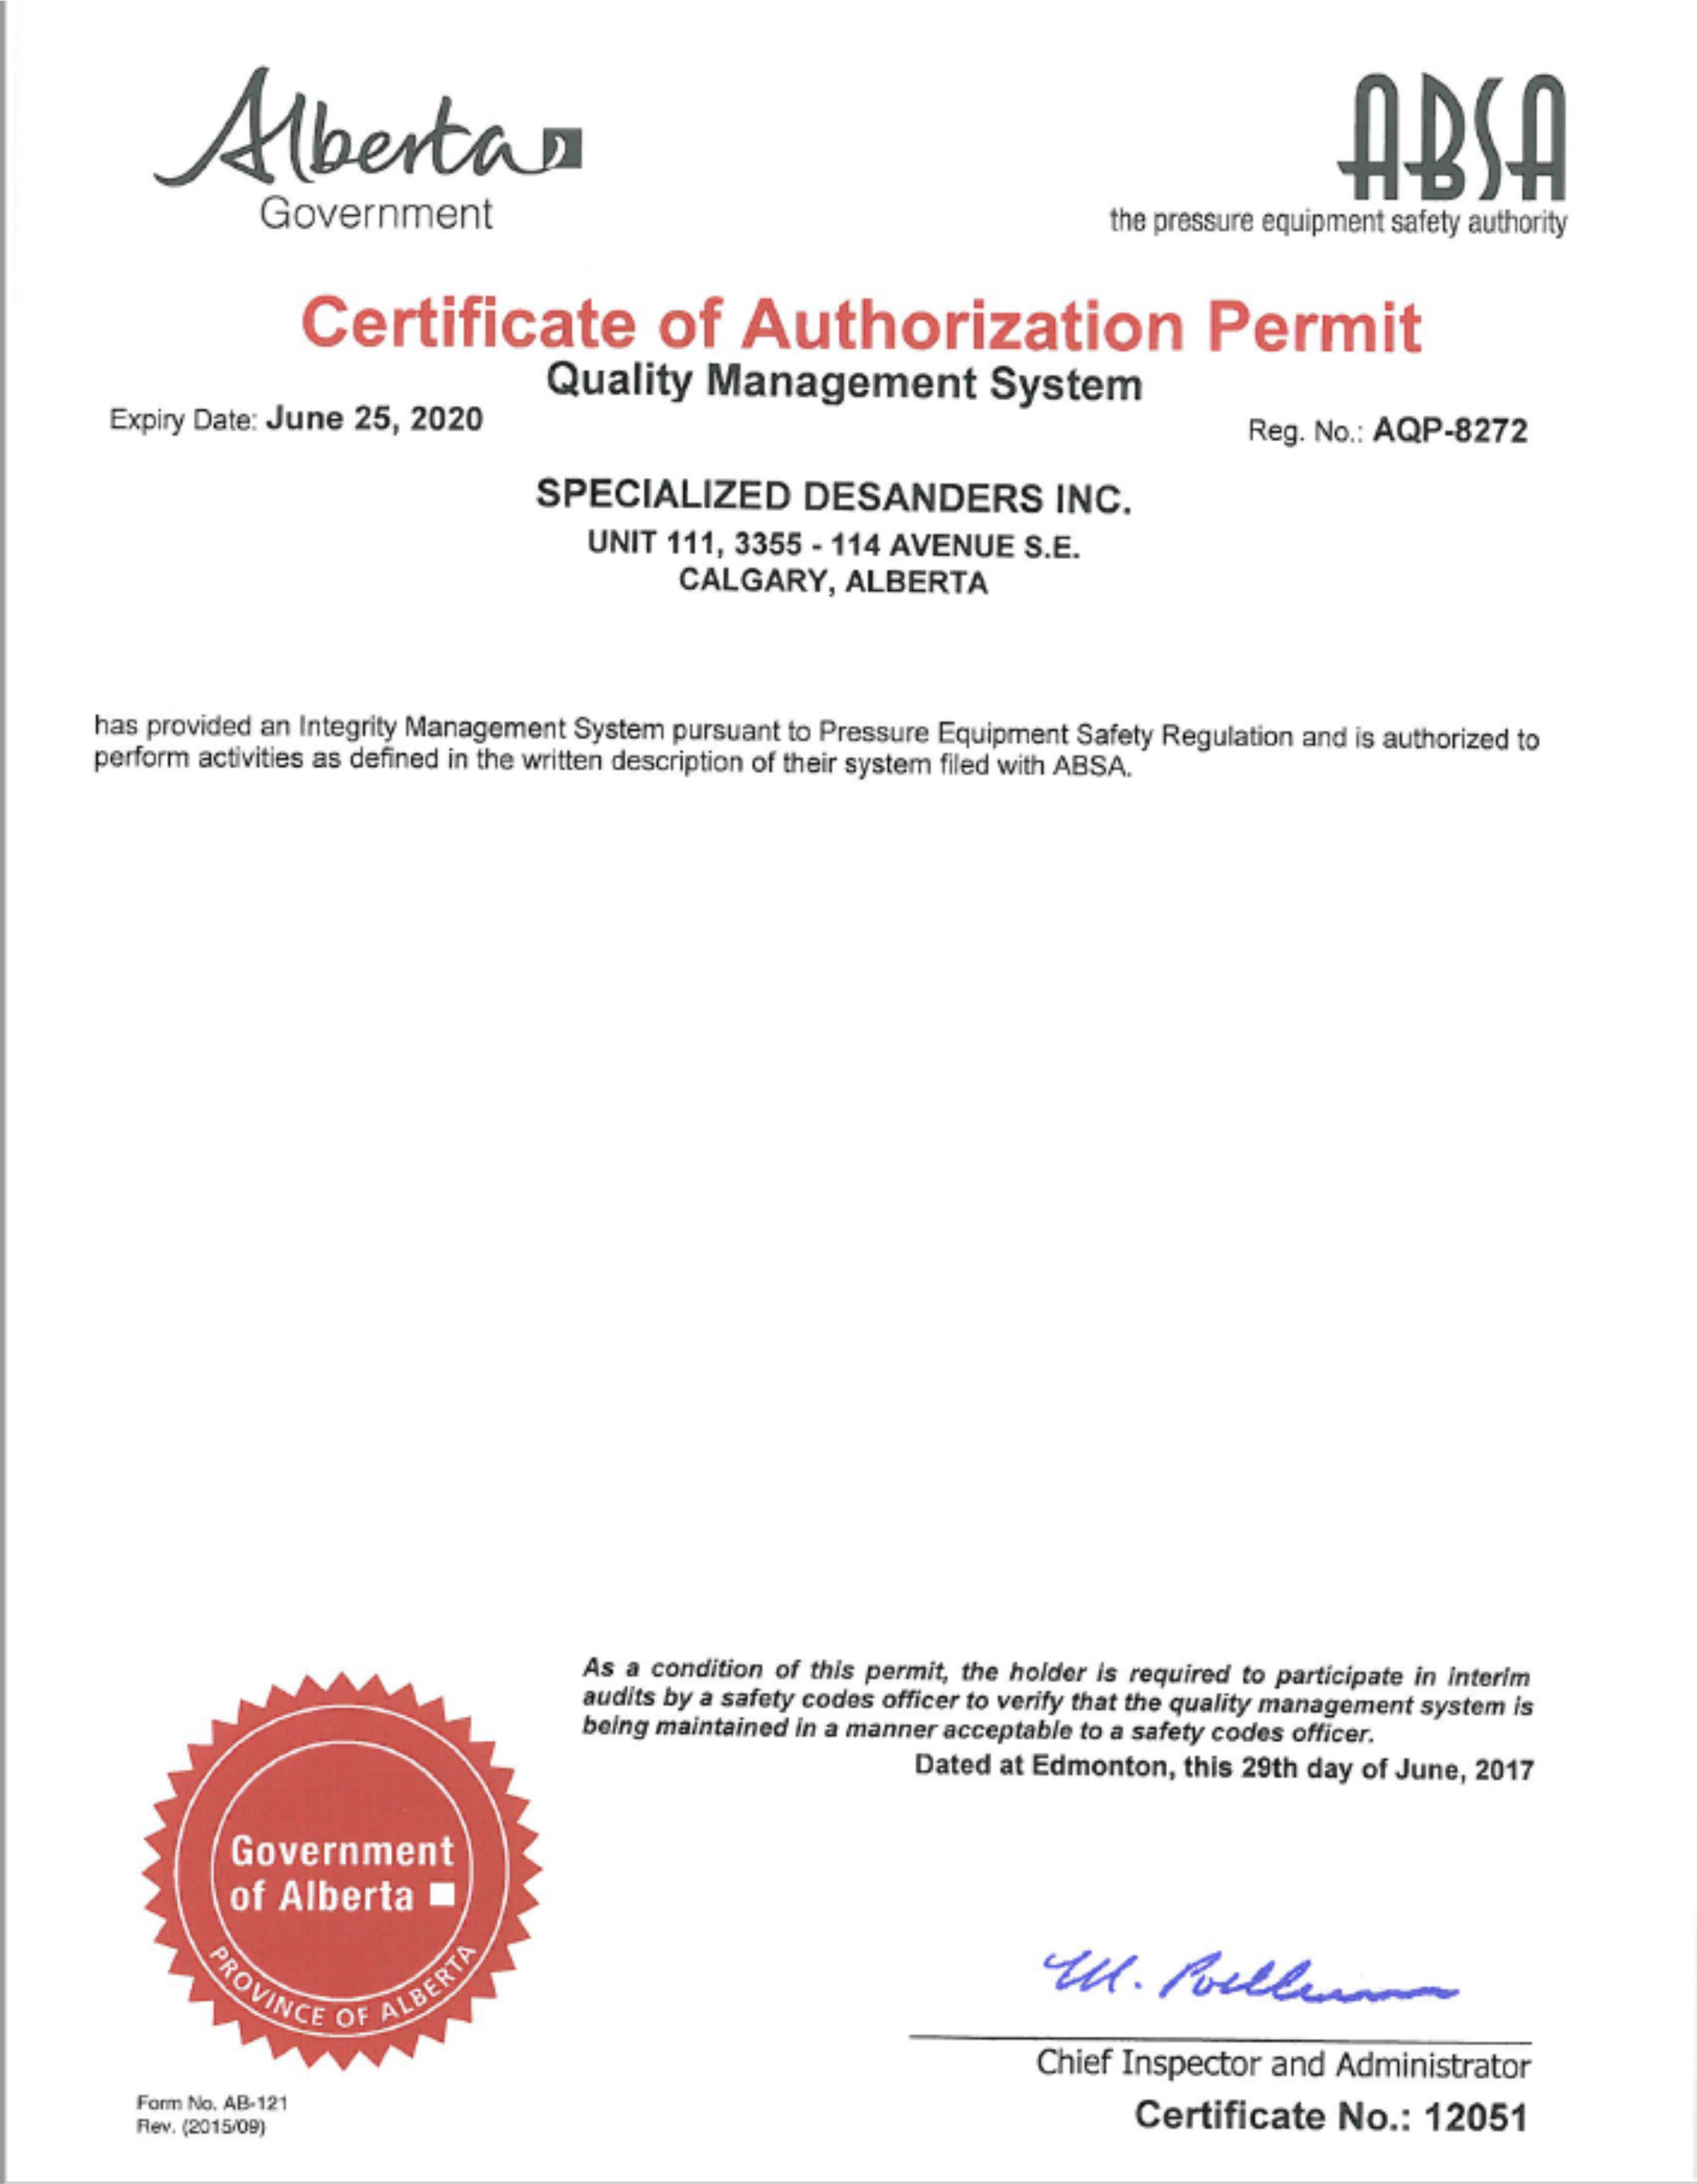 Specialized Desanders Renews Absa Certificate Of Authorization Permit To 2020 Specialized